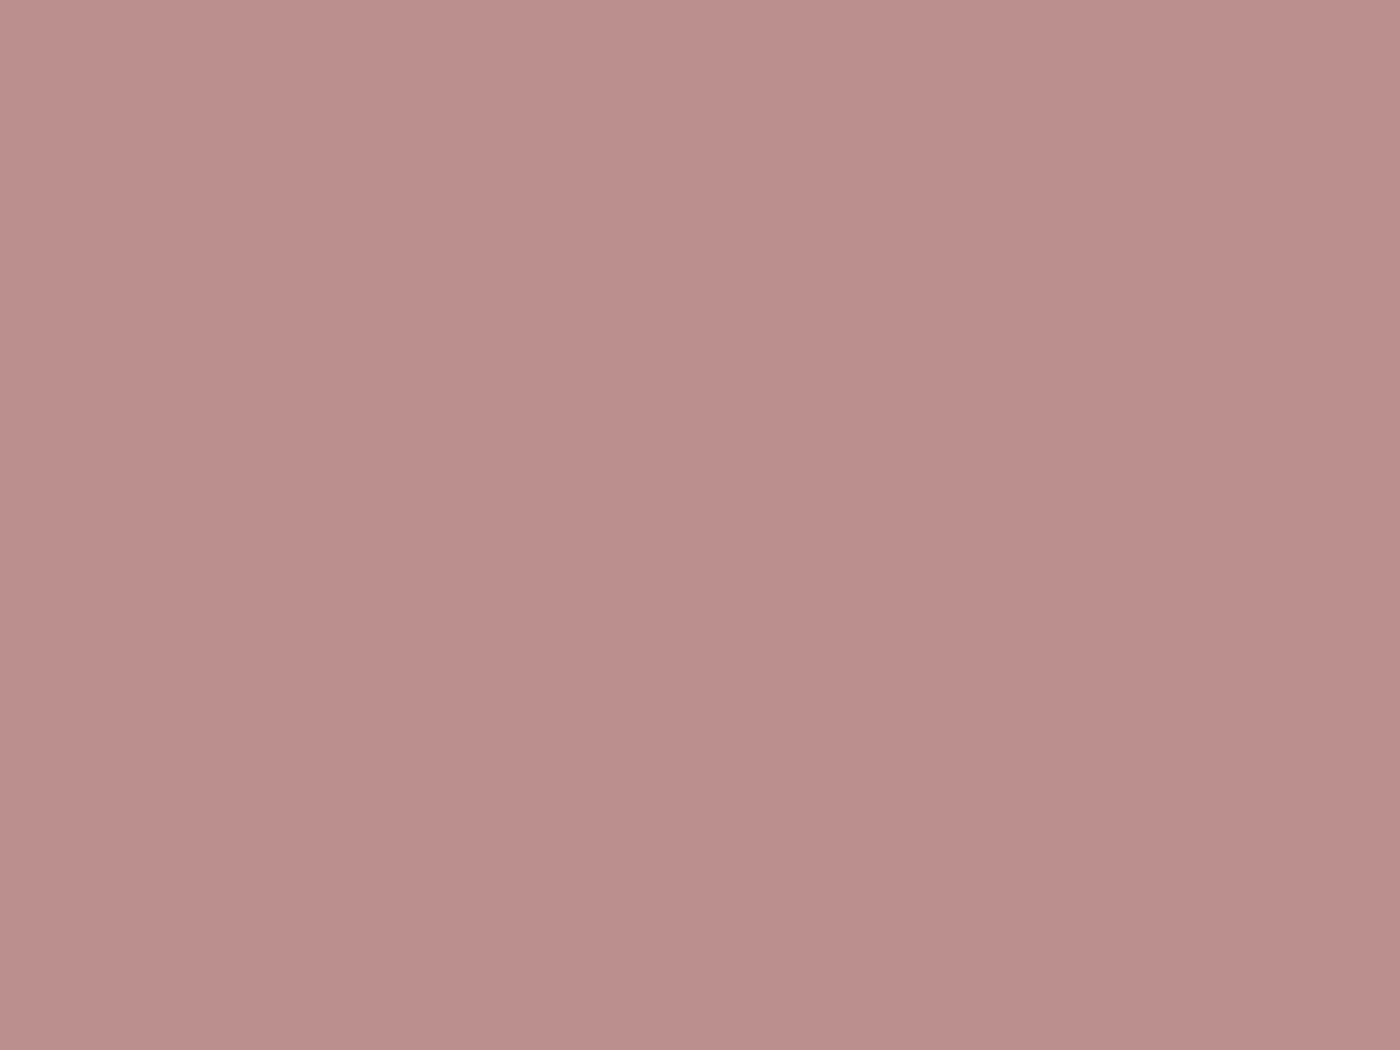 1400x1050 Rosy Brown Solid Color Background